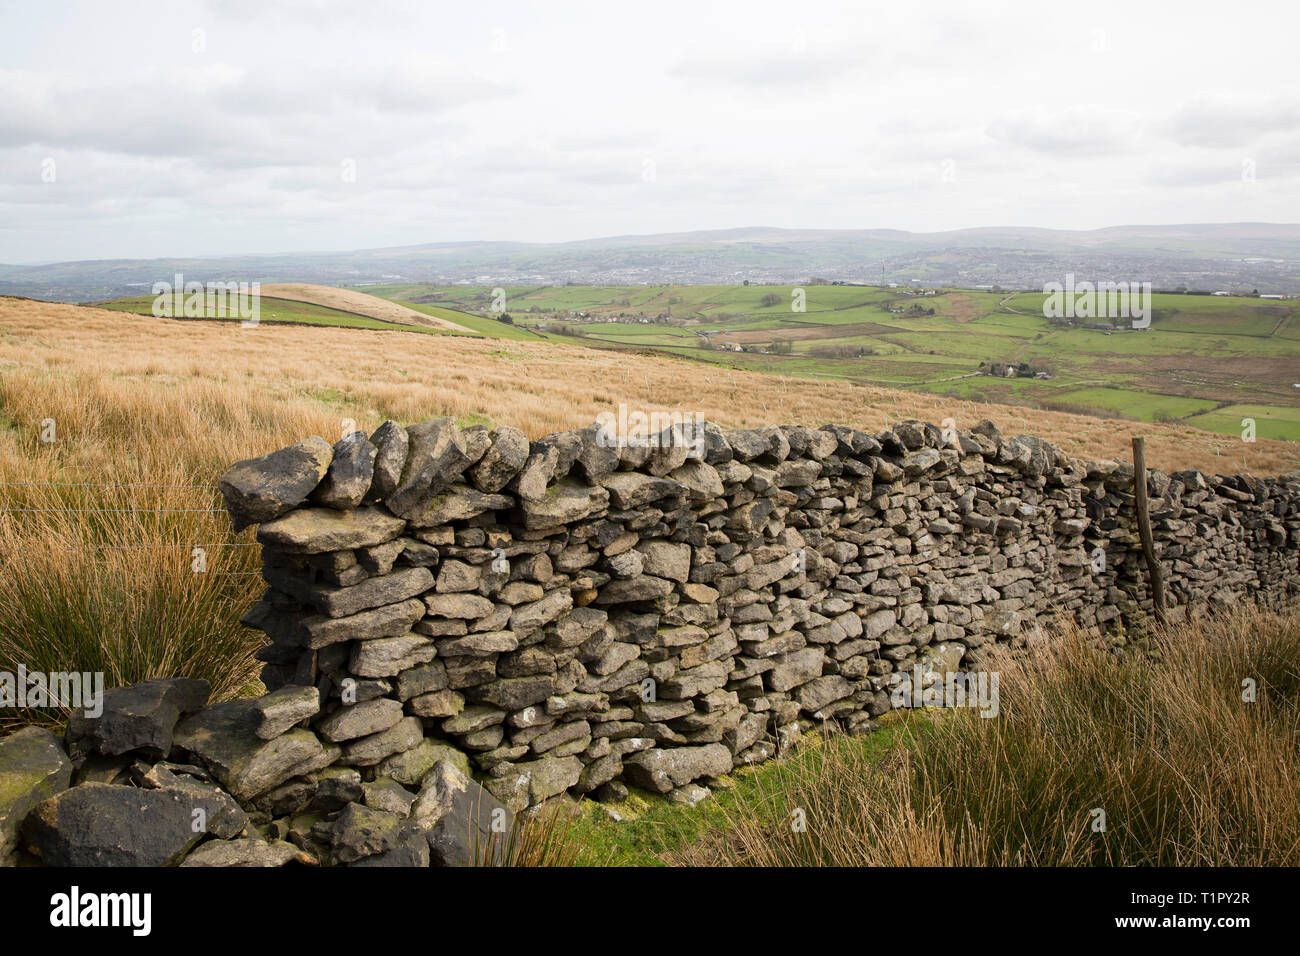 Dry stone walls on hillsides above the village of Barley, in the Borough of Pendle Lancashire. The area is popular with walkers and known for the Pend - Stock Image